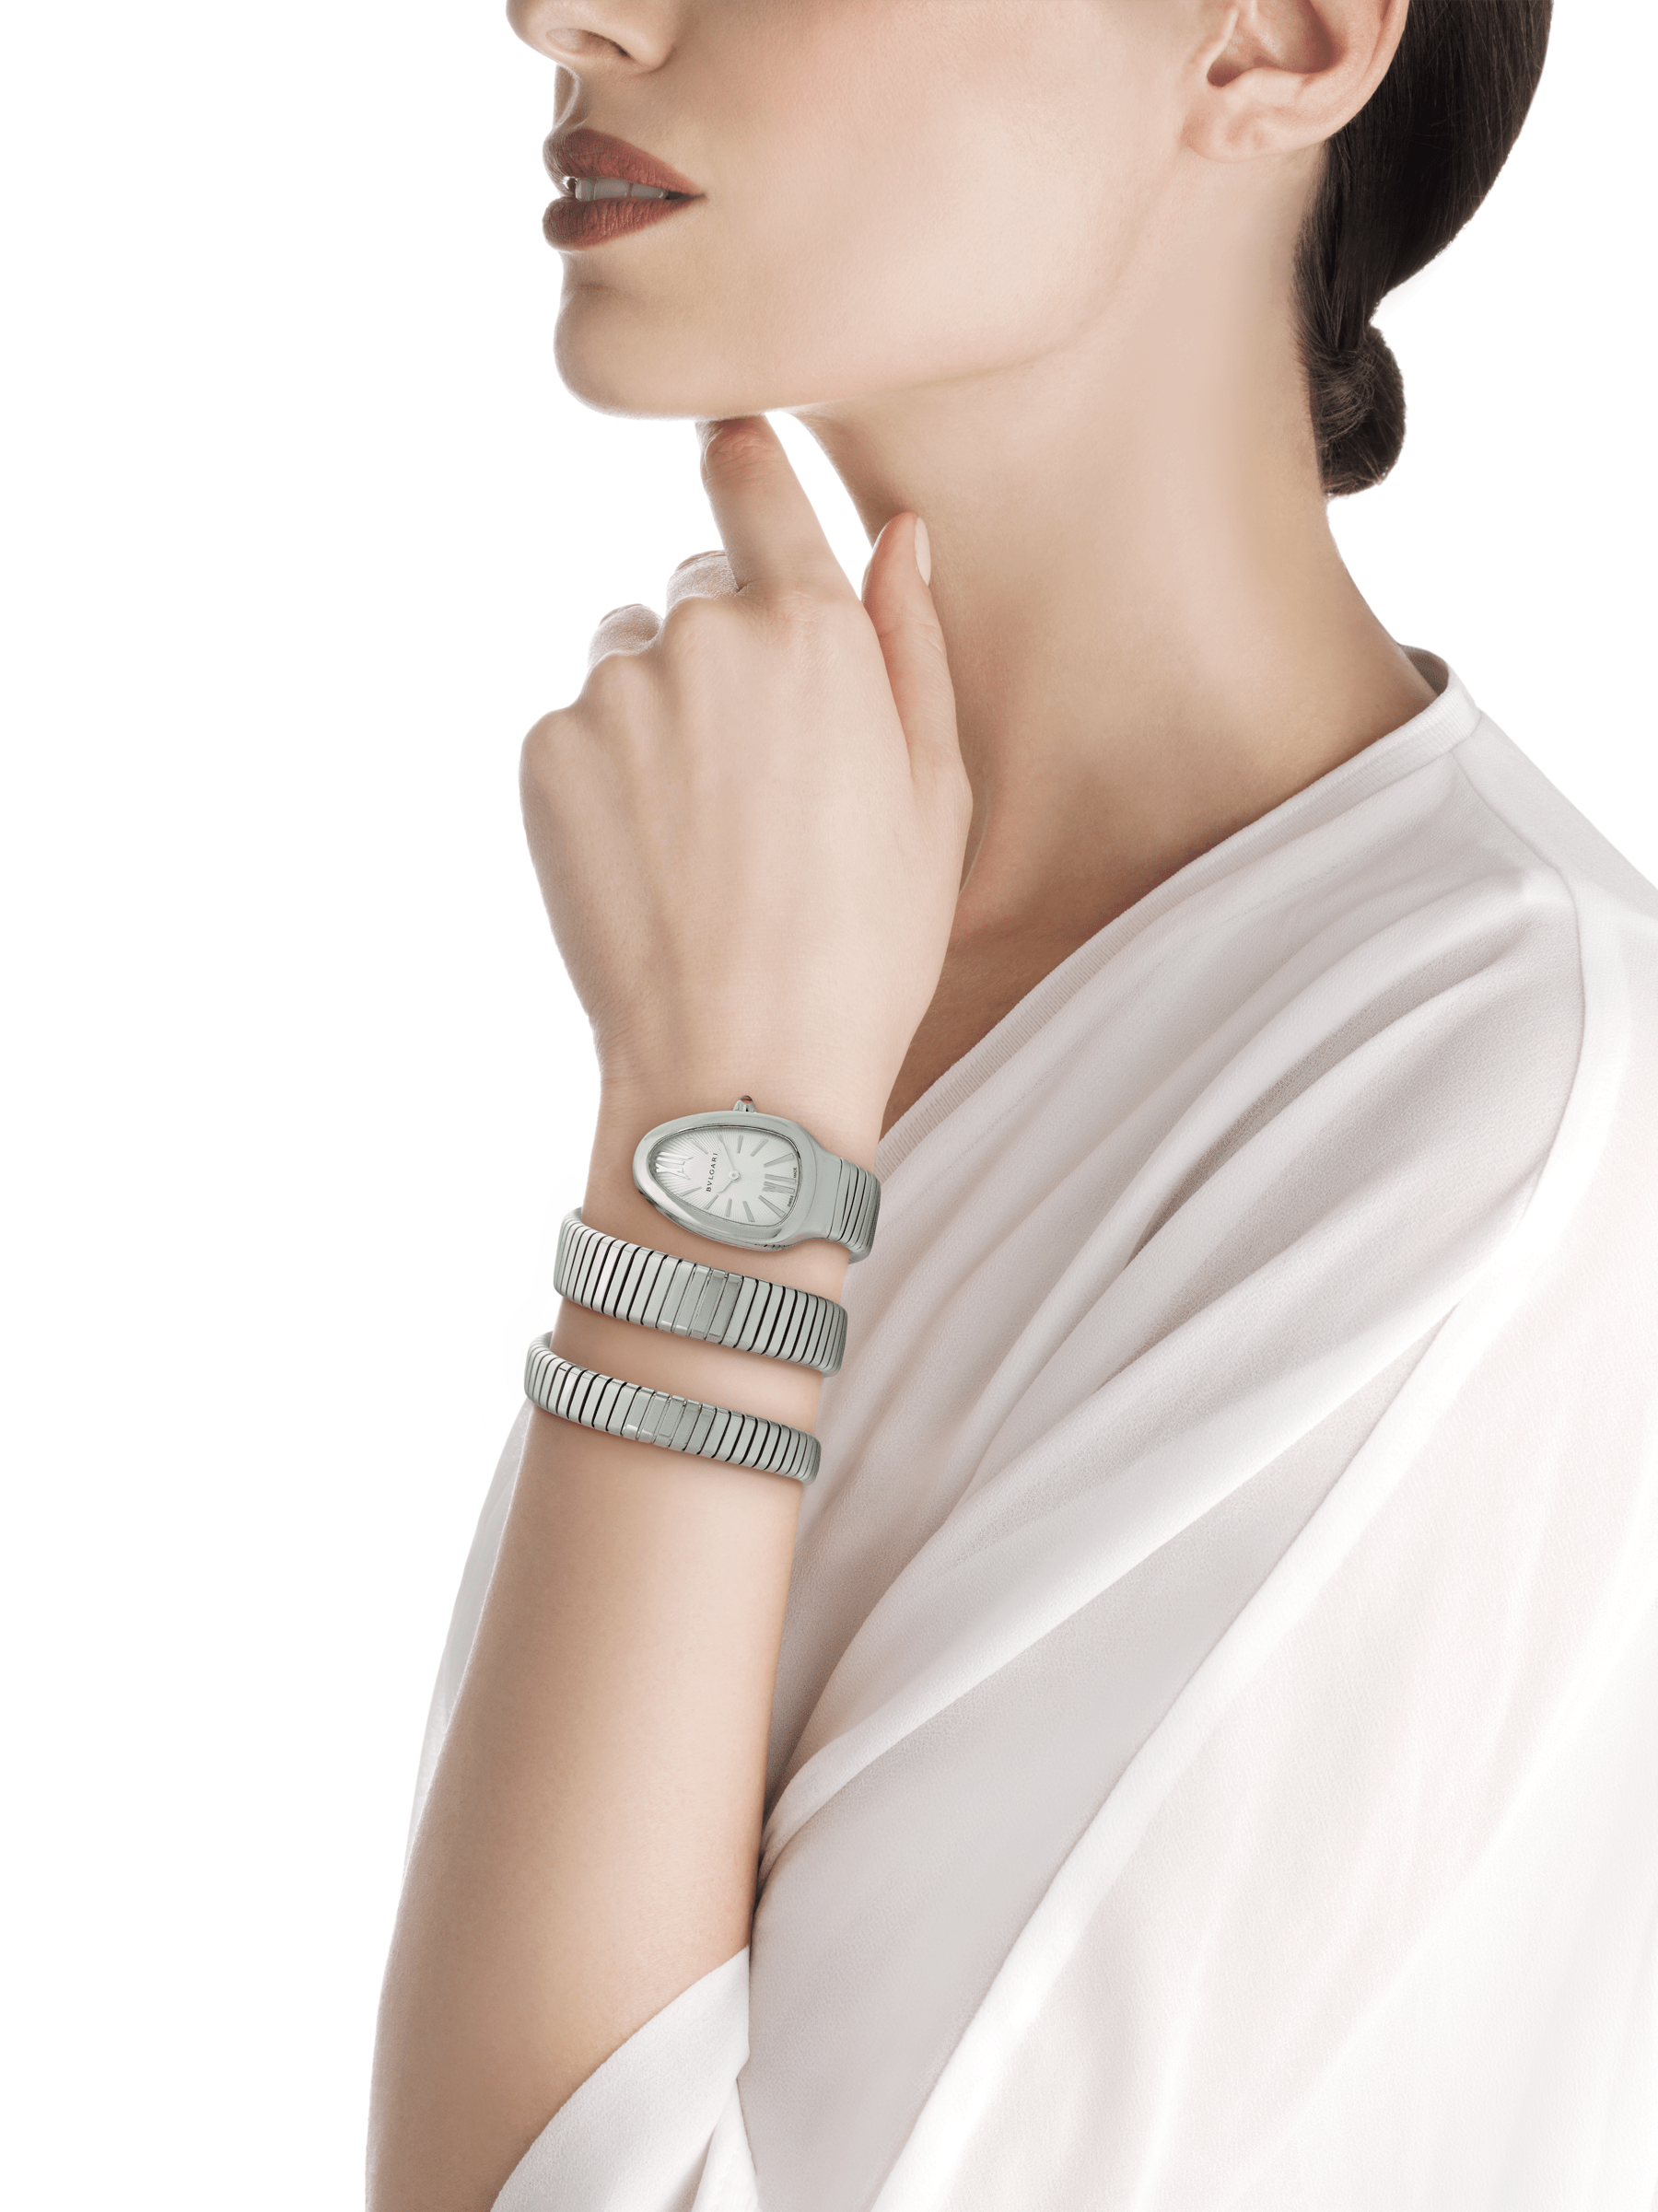 Serpenti Tubogas double spiral watch in stainless steel case and bracelet, with silver opaline dial. 101911 image 4